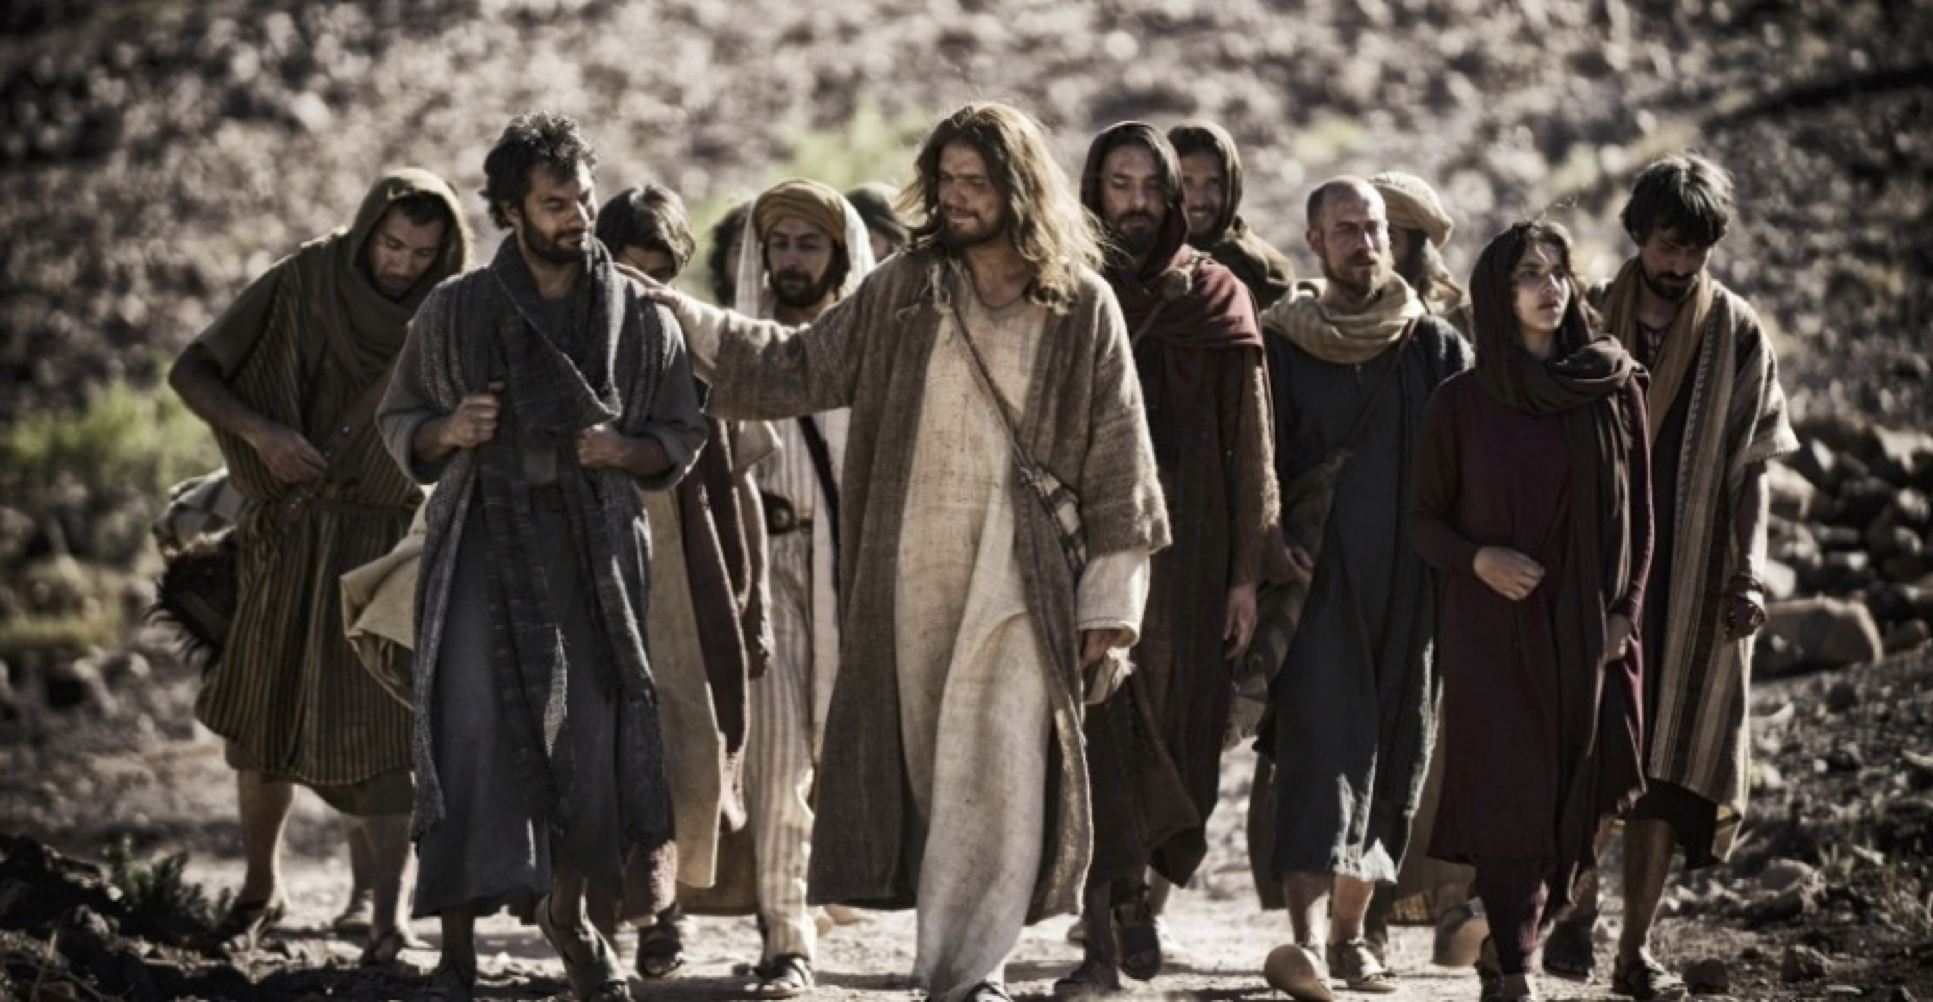 What does it mean to be a disciple of Jesus?